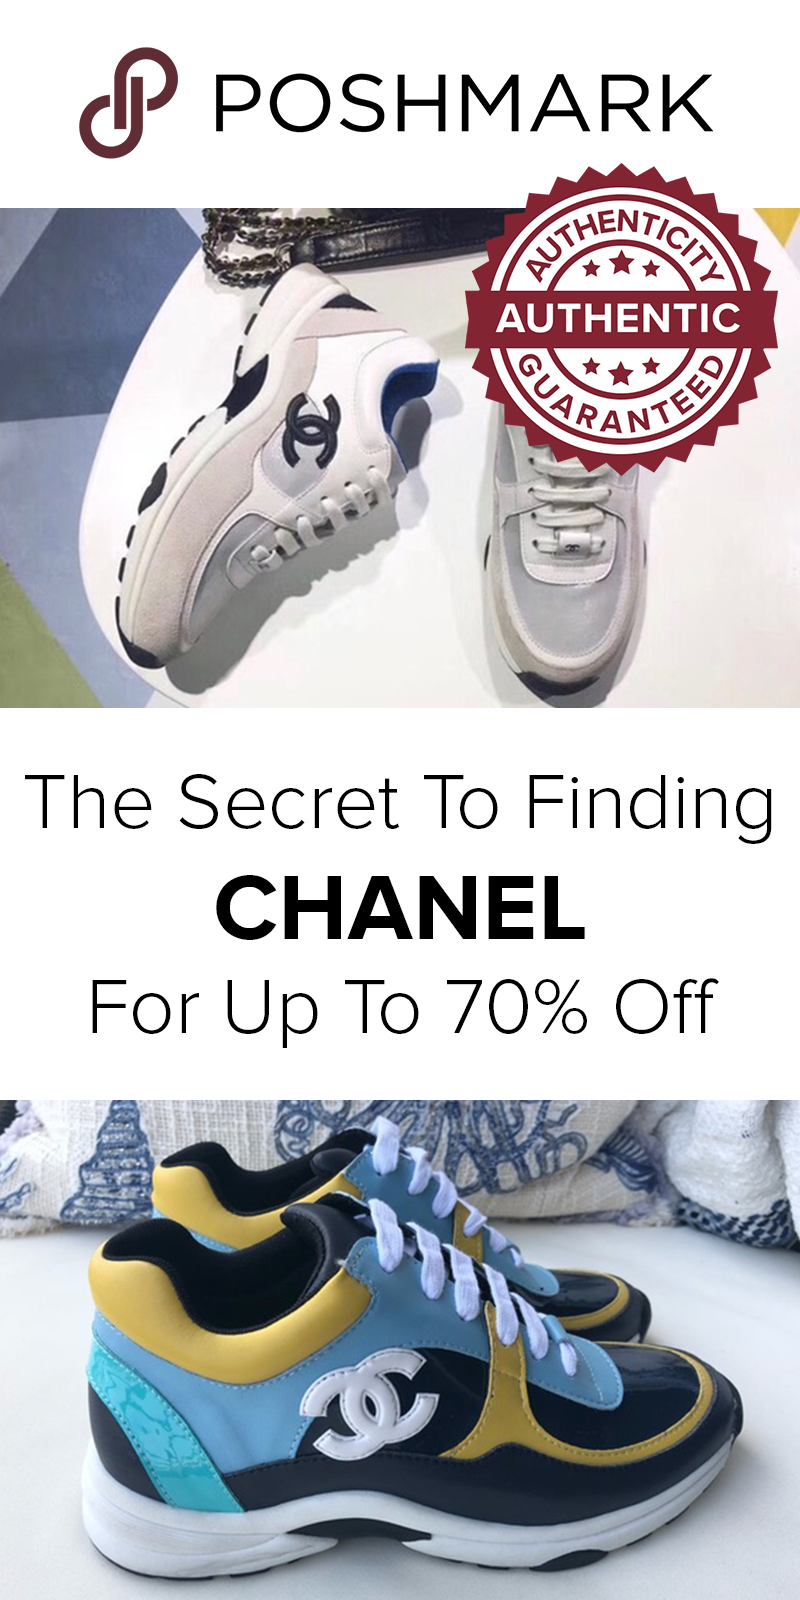 Find authentic Chanel sneakers for